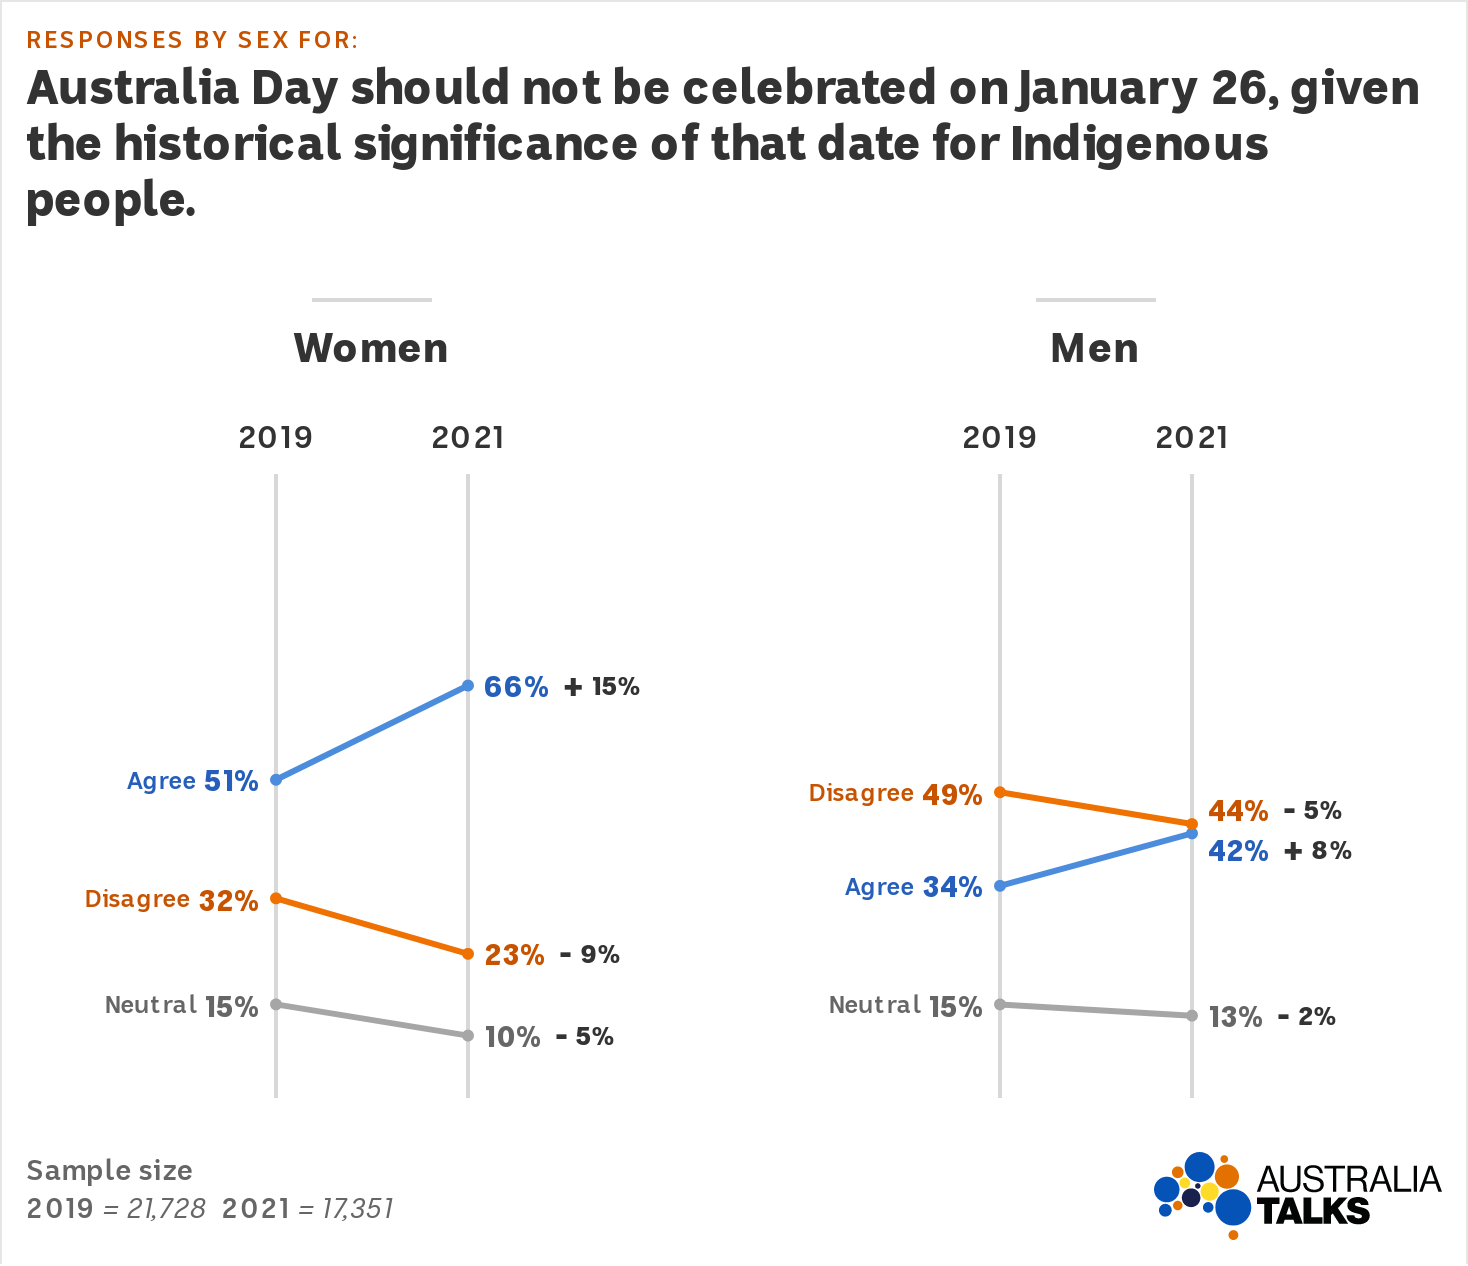 Graphs showing more women than men agree Australia Day should not be celebrated on January 26